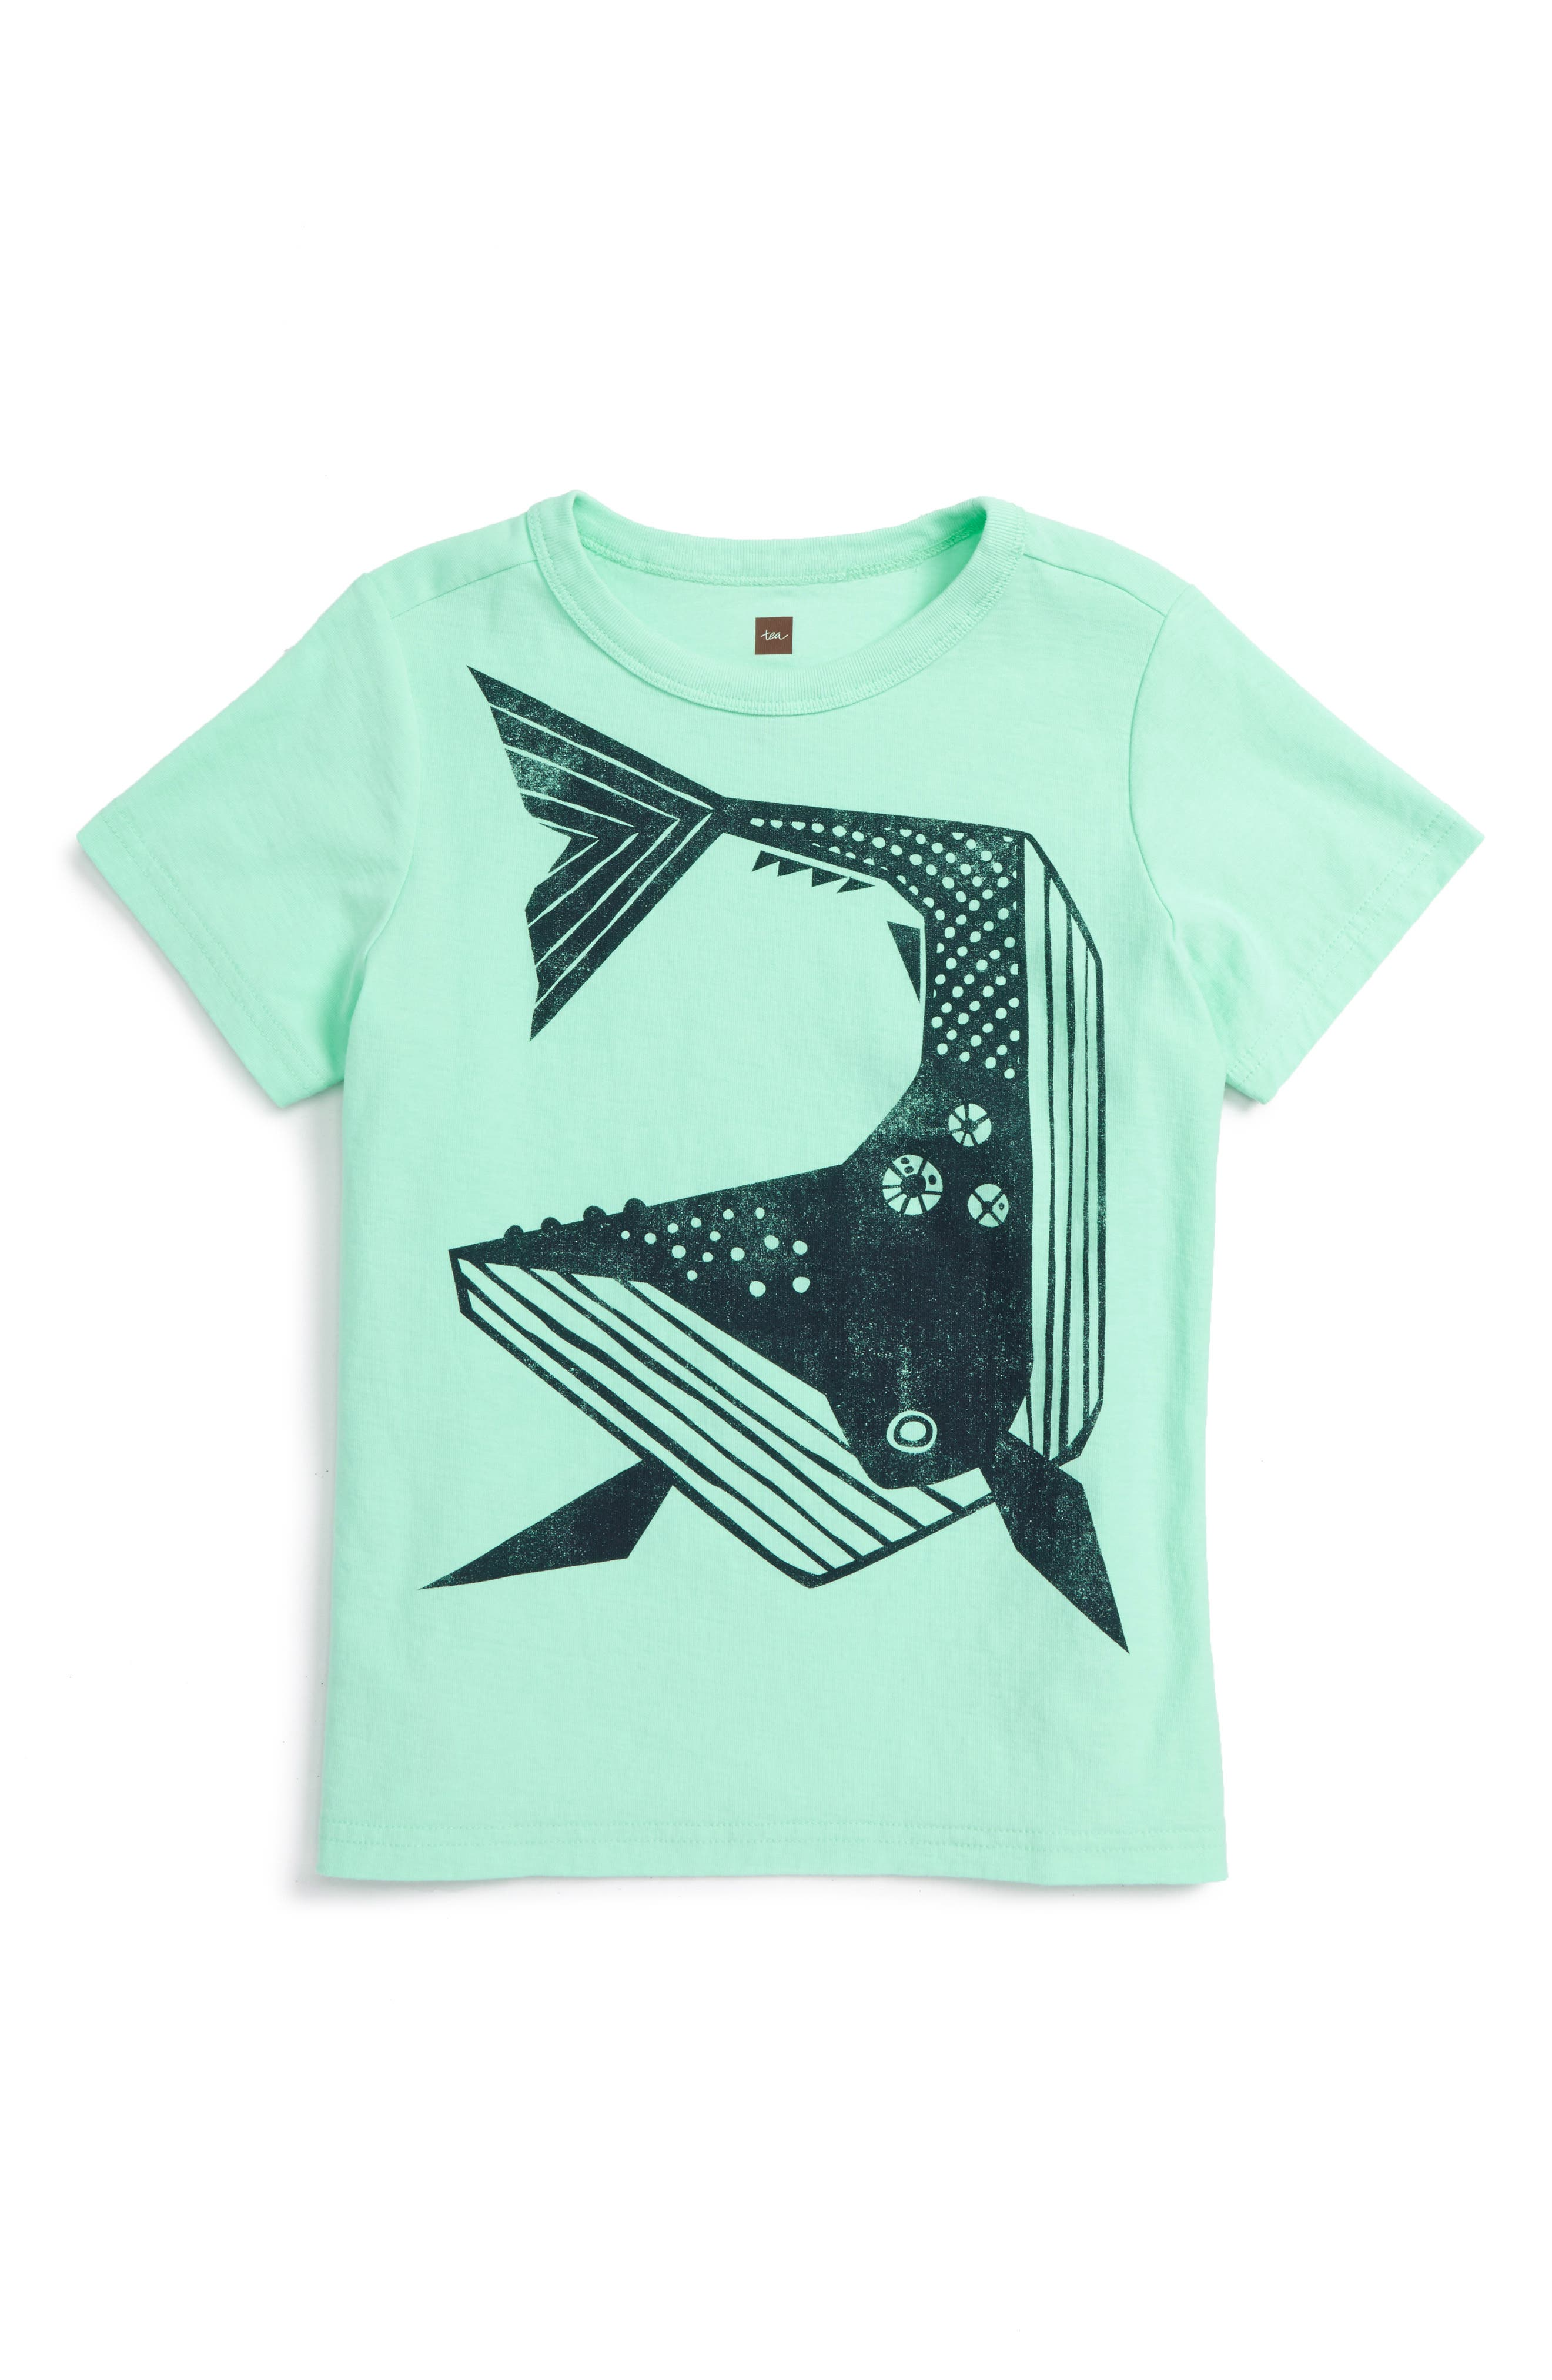 Main Image - Tea Collection Whale Then Graphic T-Shirt (Toddler Boys & Little Boys)